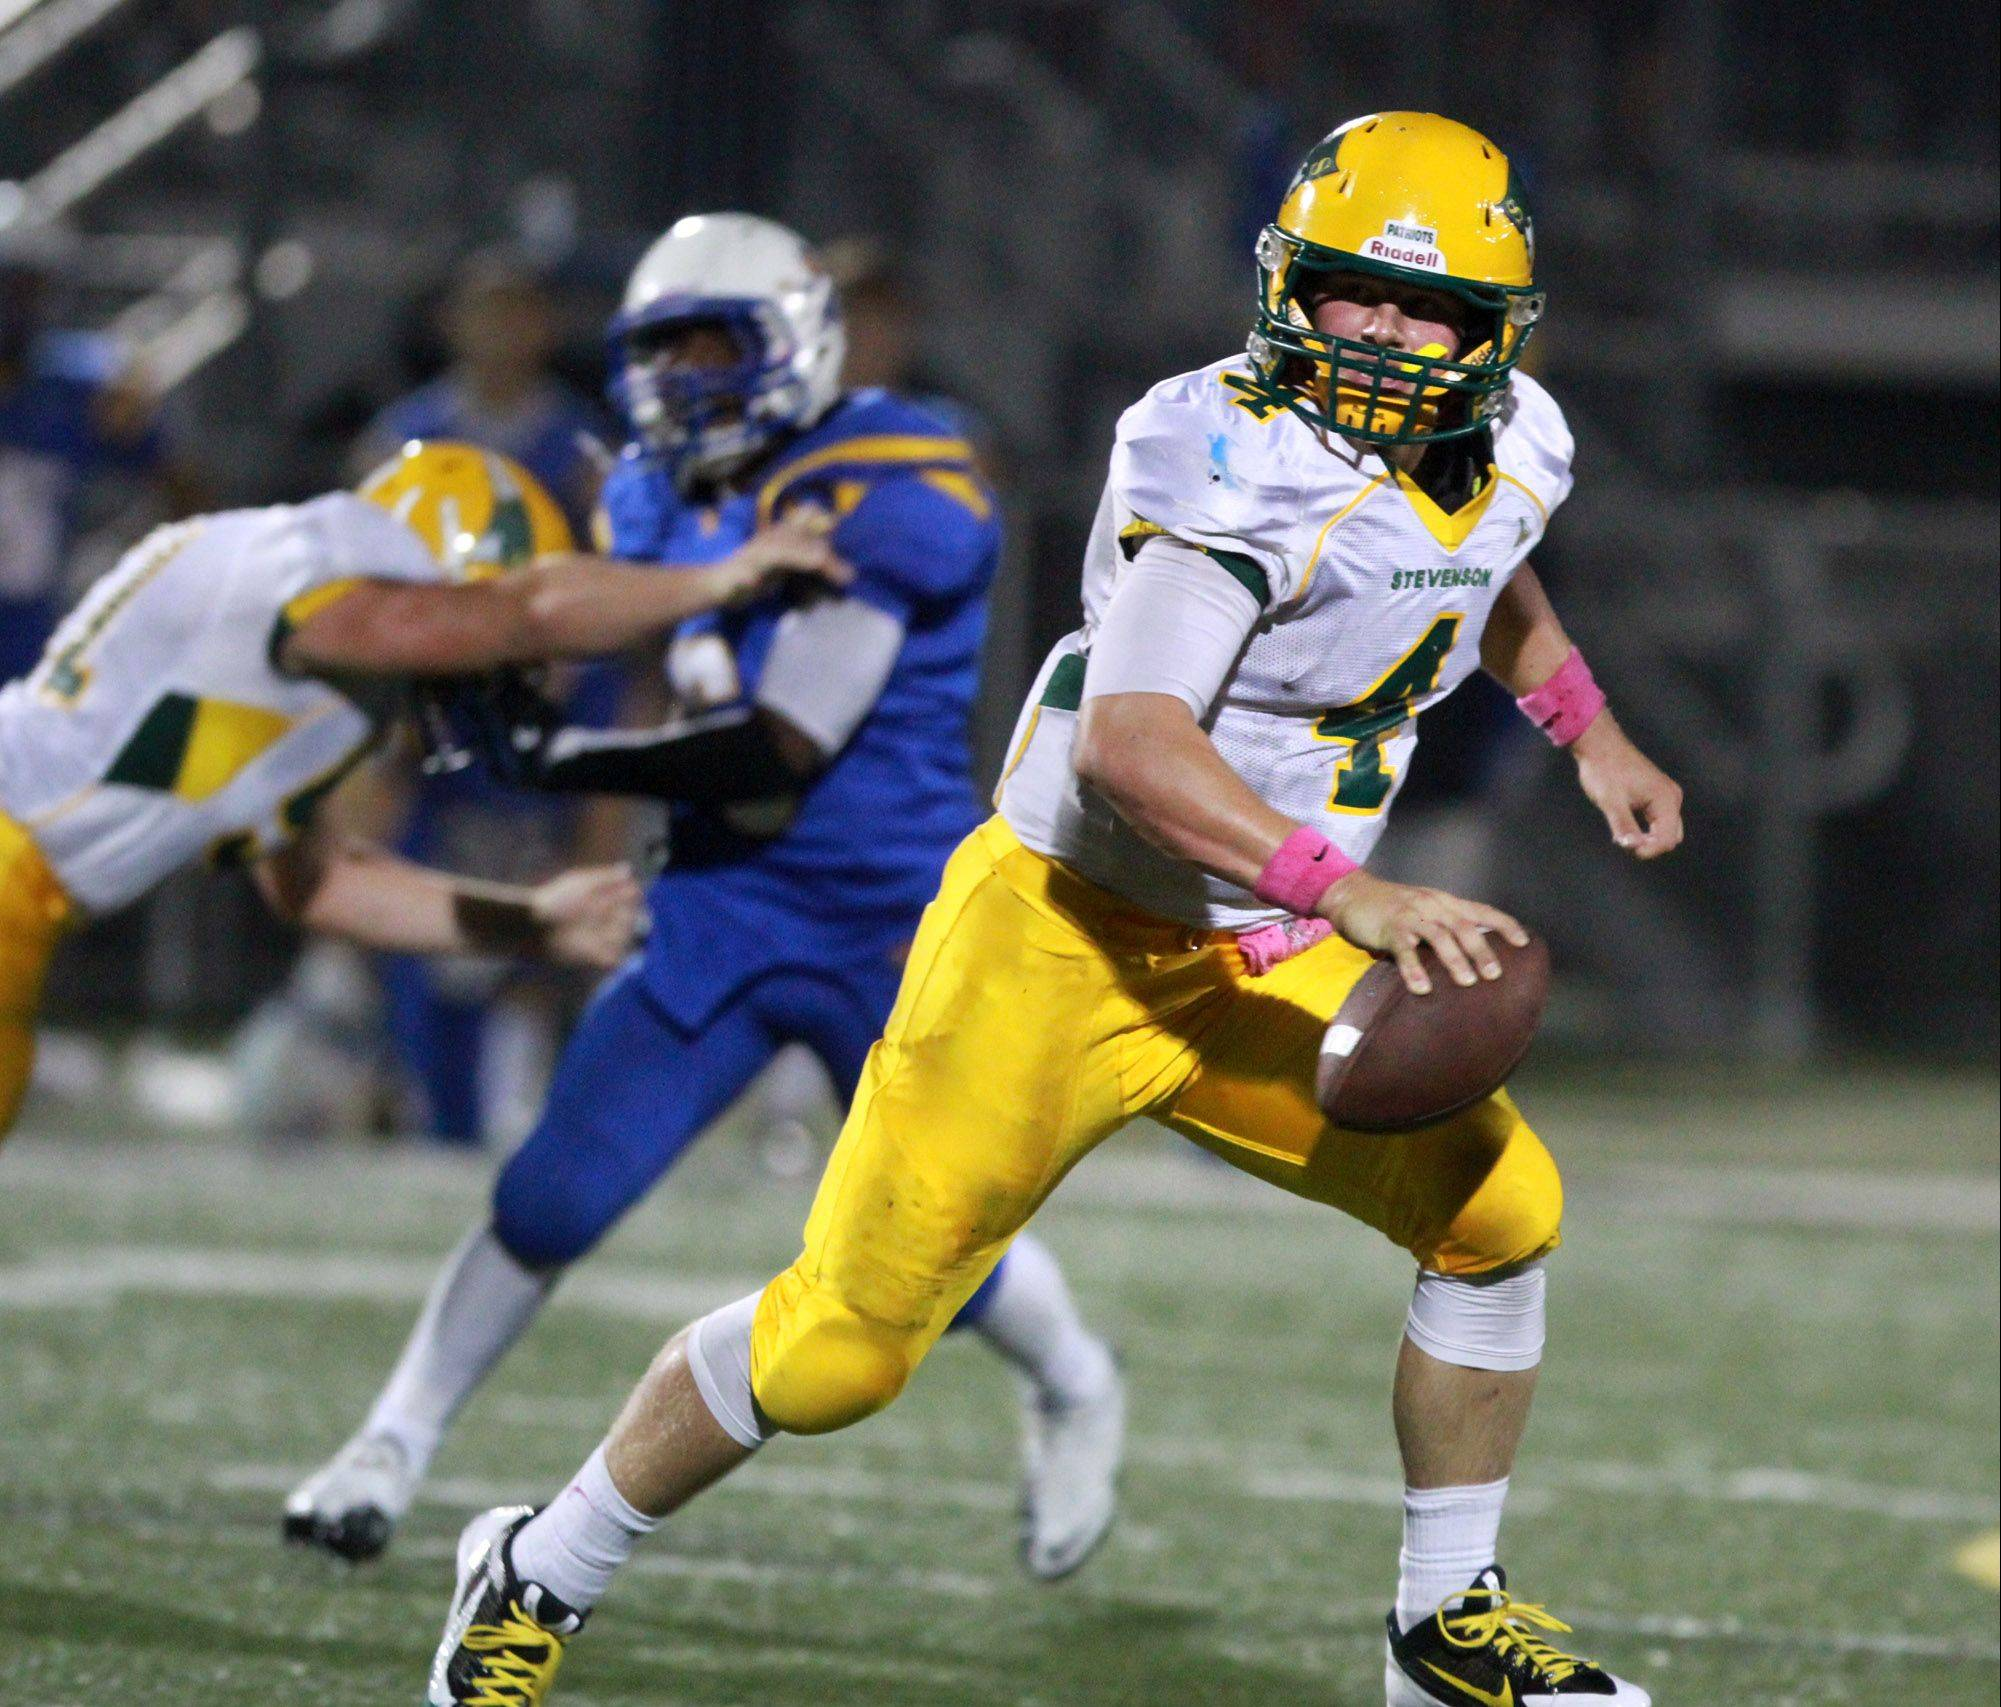 Stevenson quarterback Willie Bourbon scrambles with the ball against Warren on Friday.